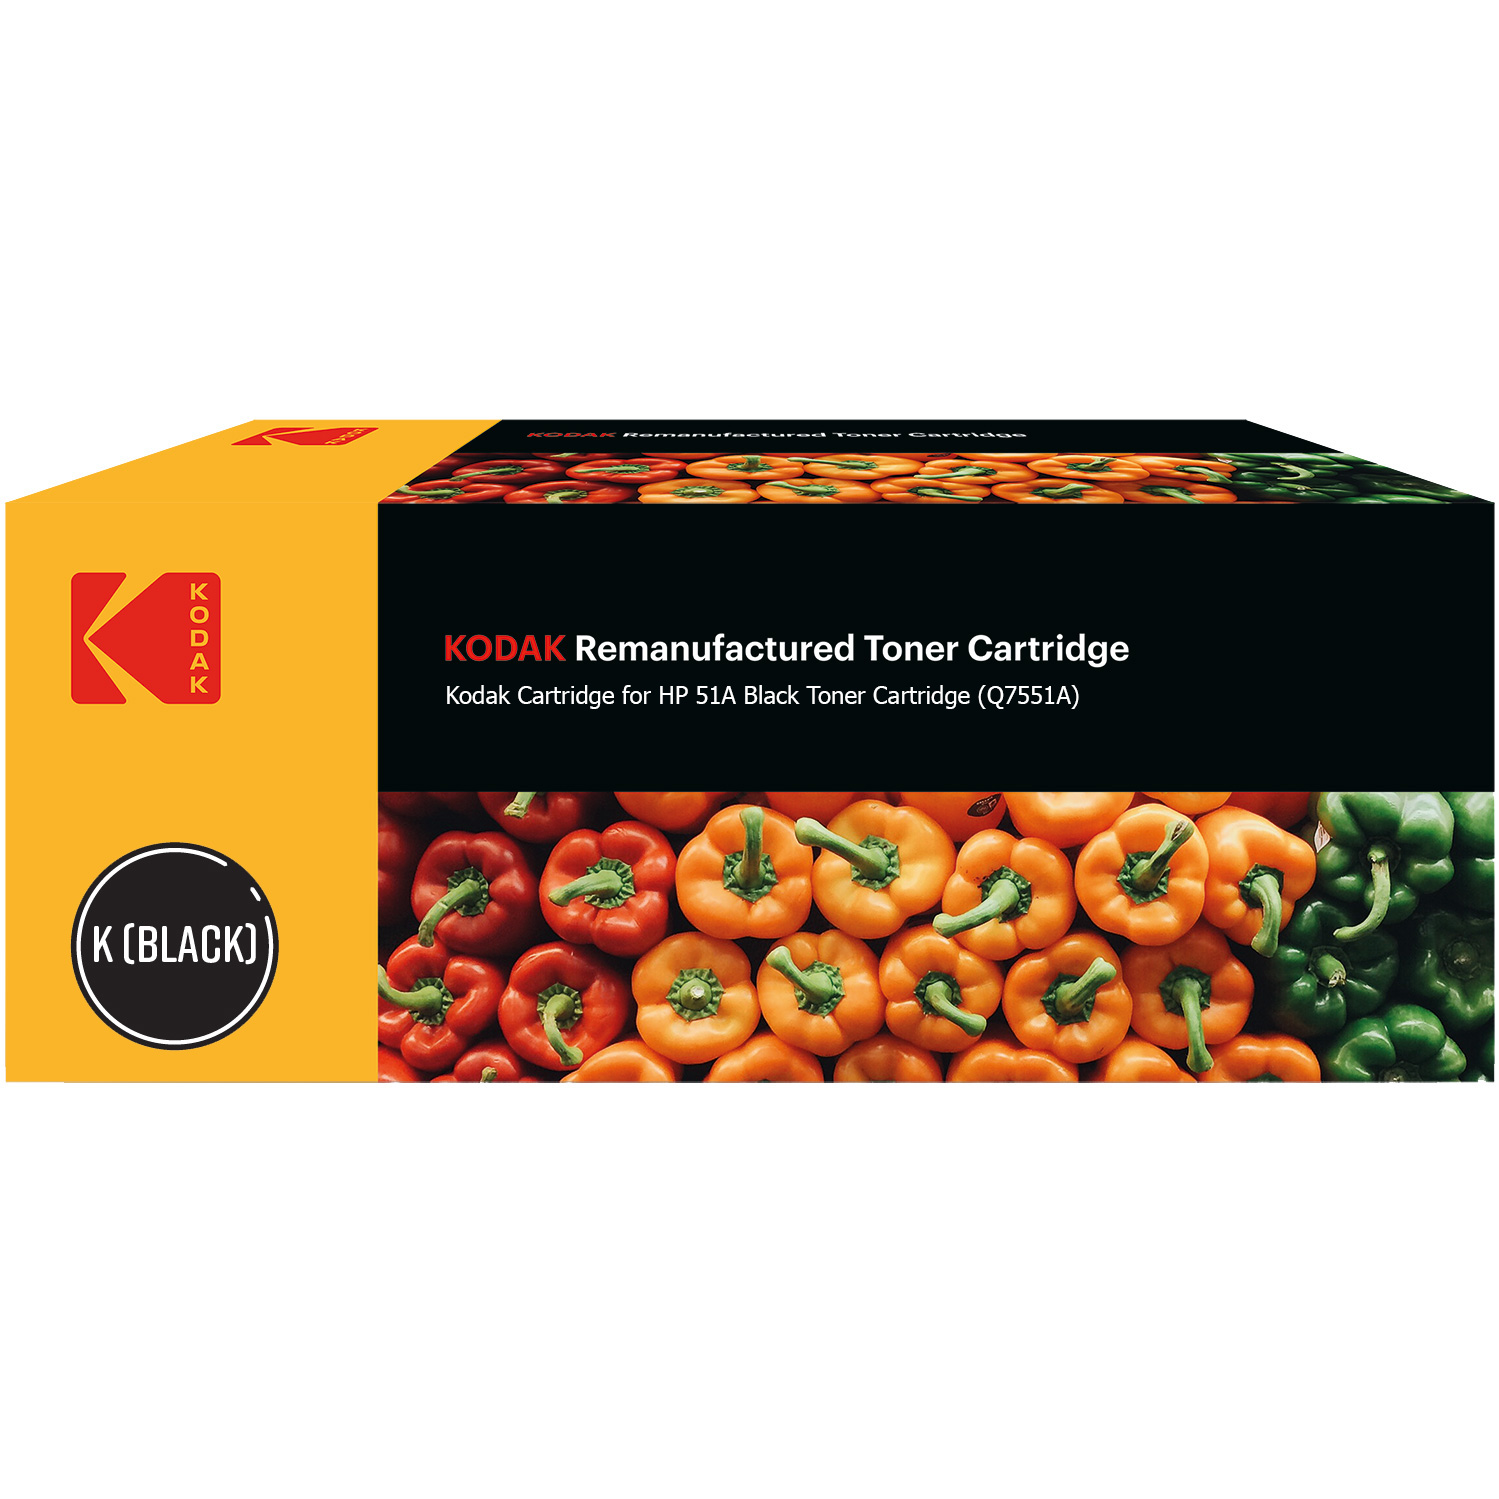 Ultimate HP 51A Black Toner Cartridge (Q7551A) (Kodak KODQ7551A)